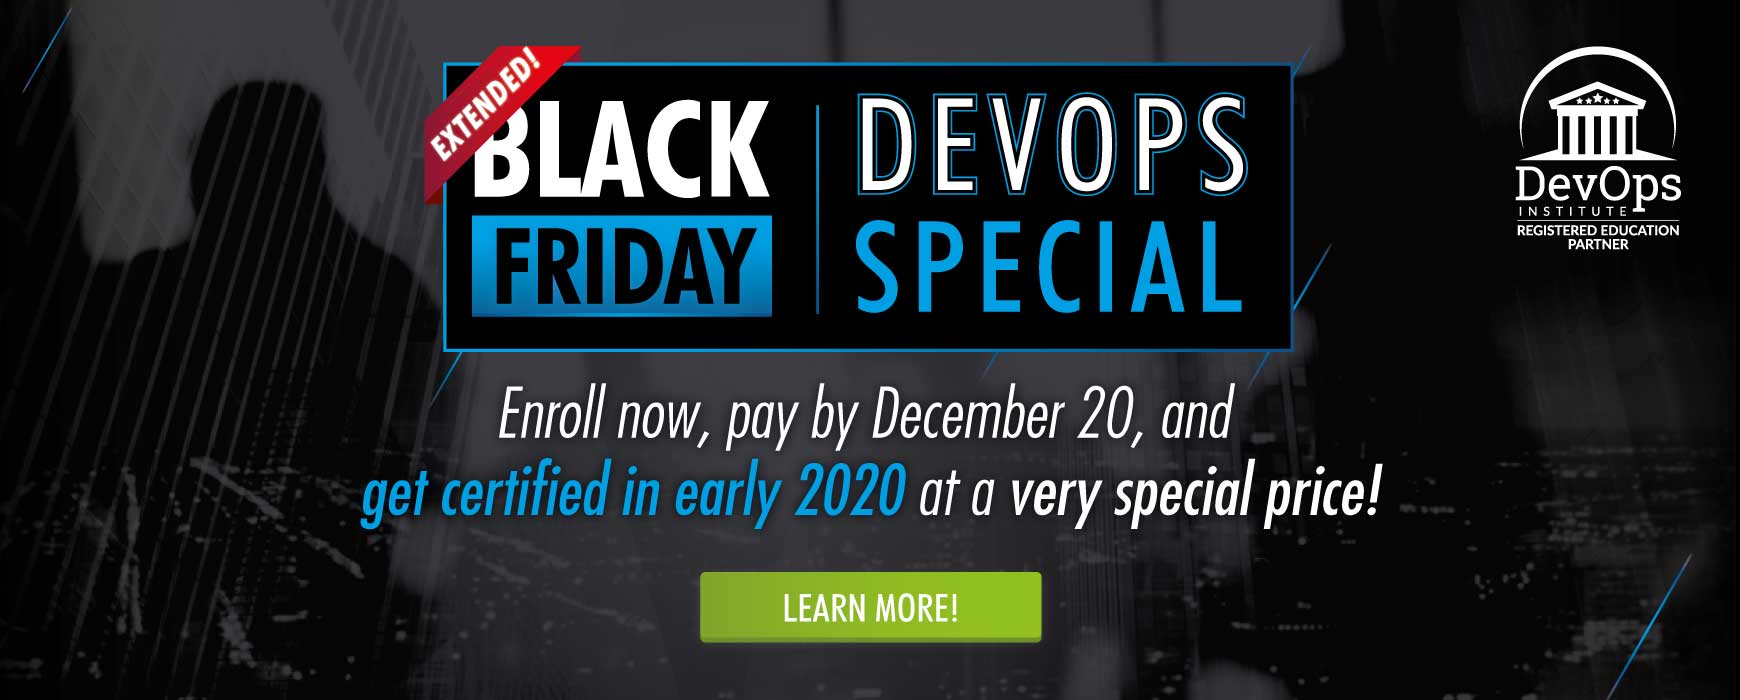 DevOps Black Friday Special Extended!